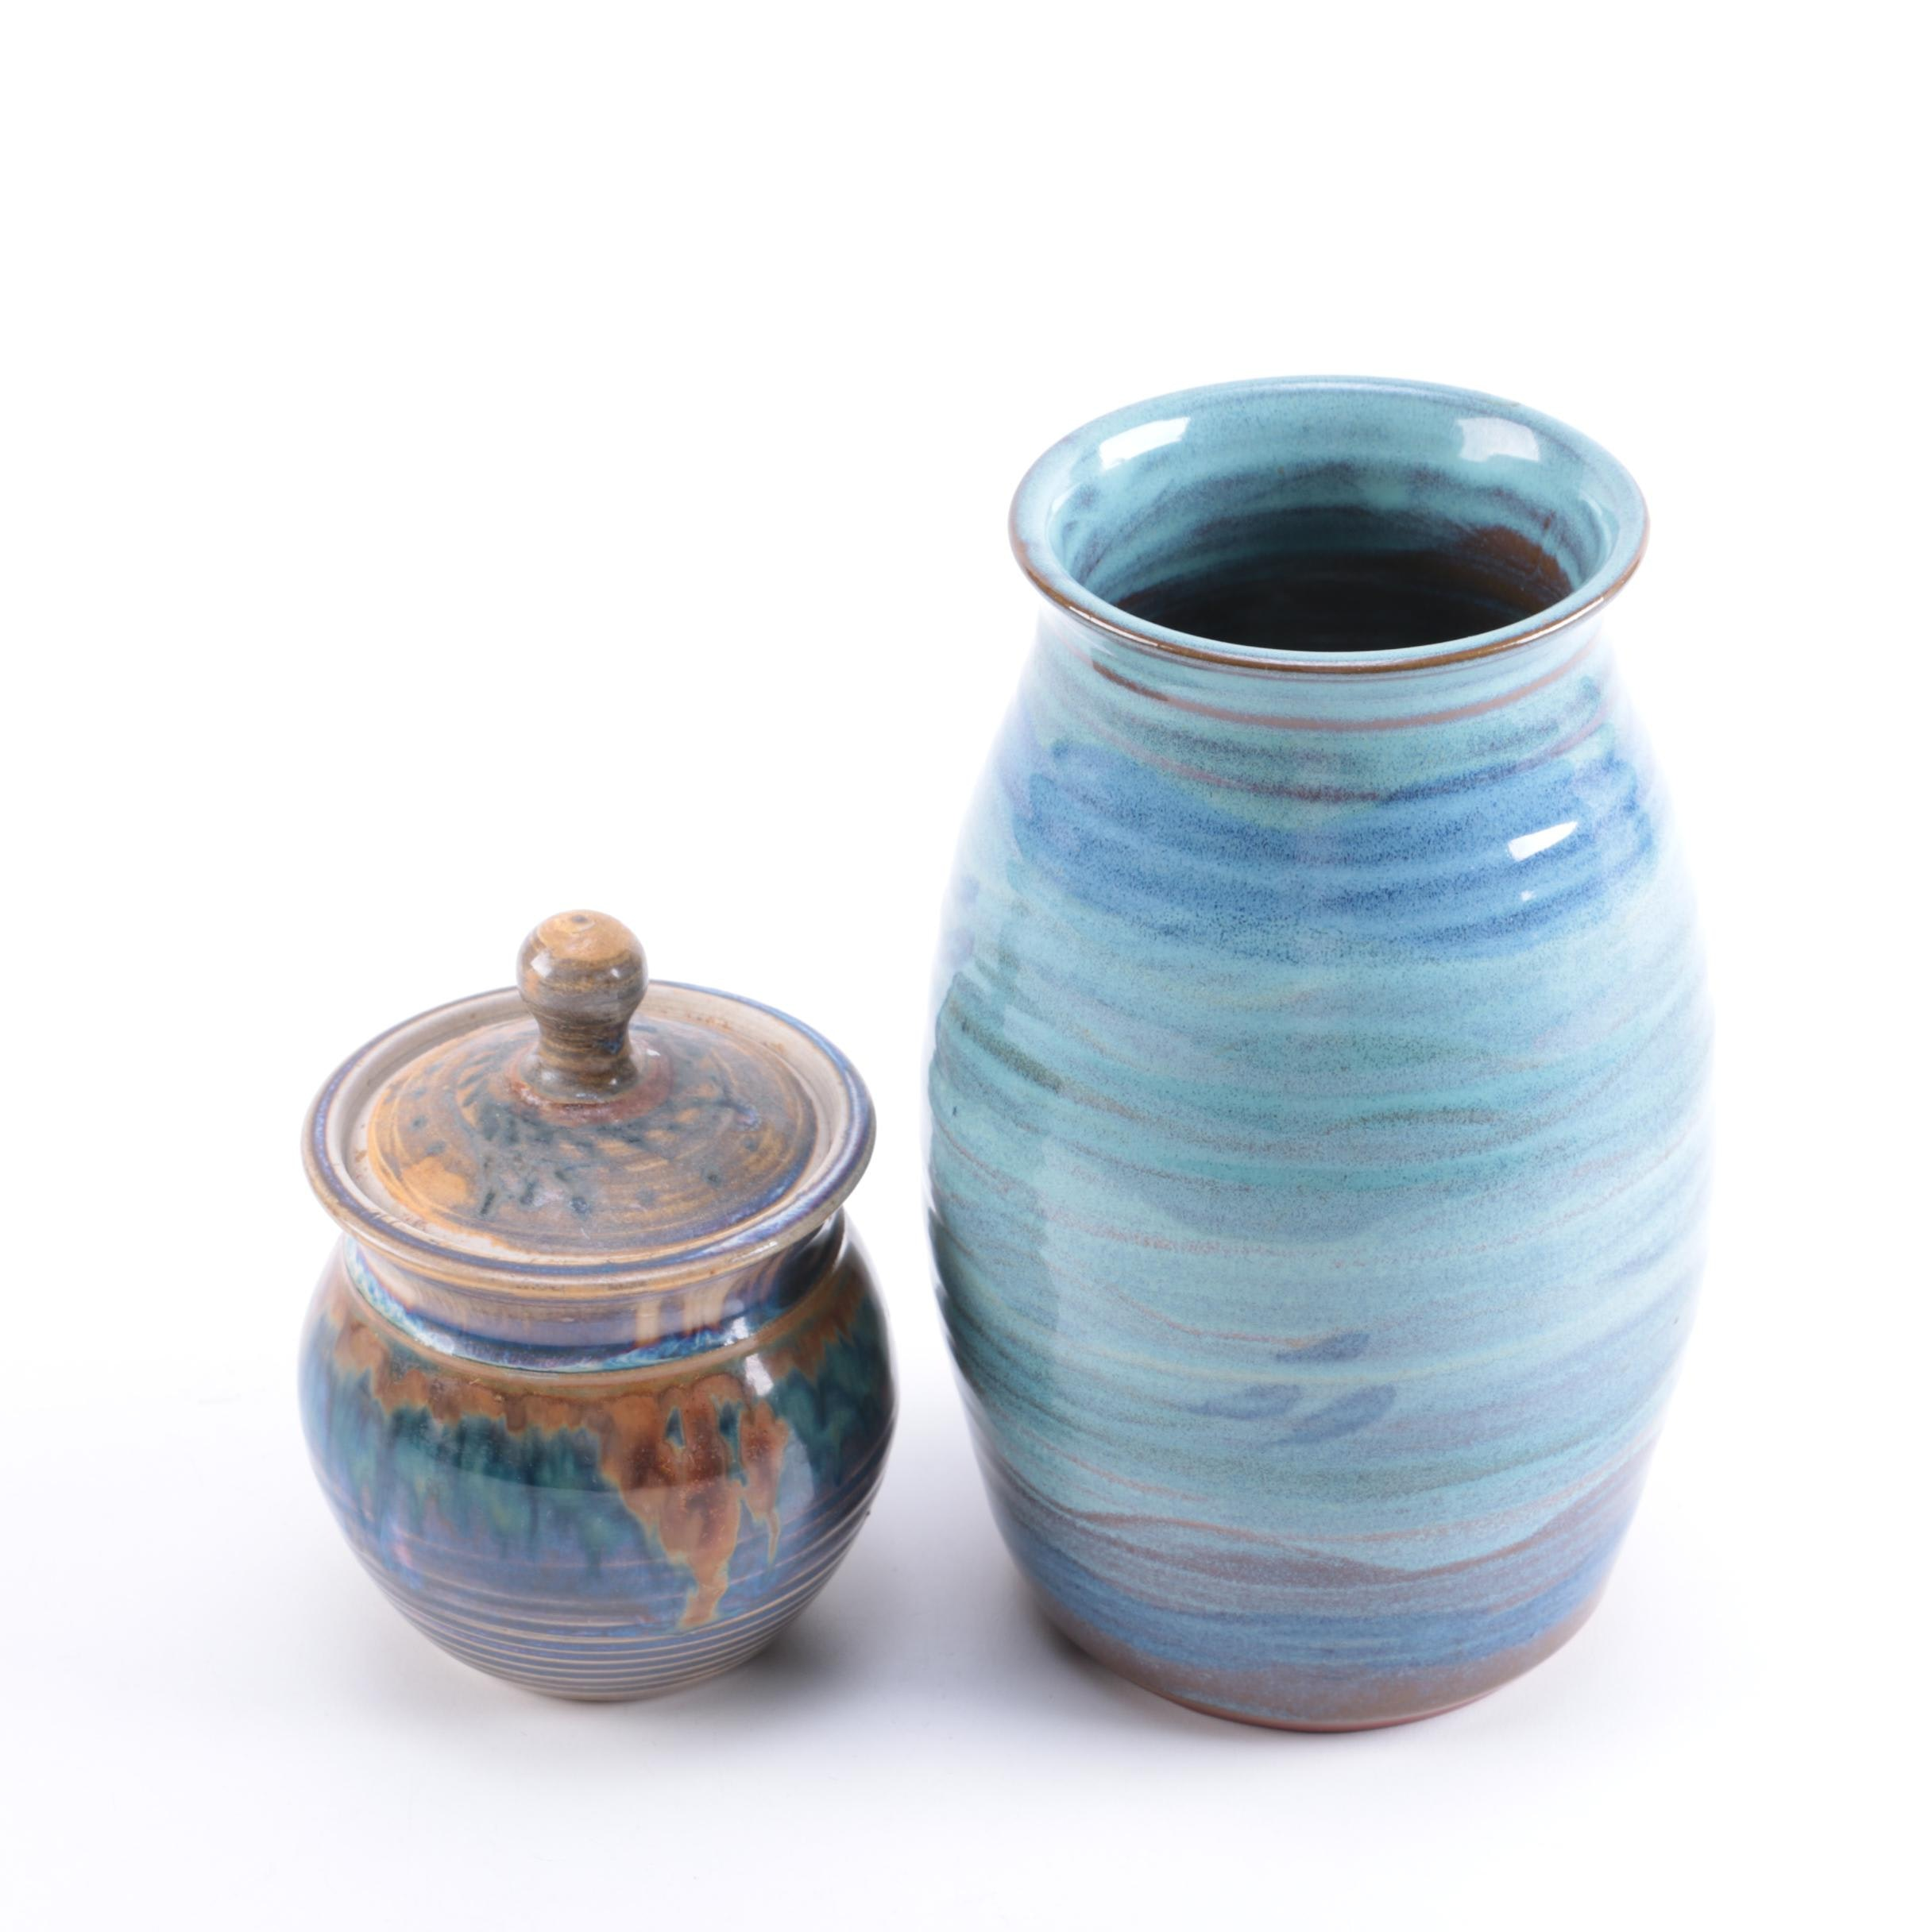 Handmade Pottery Containers, Including Tater Knob Pottery